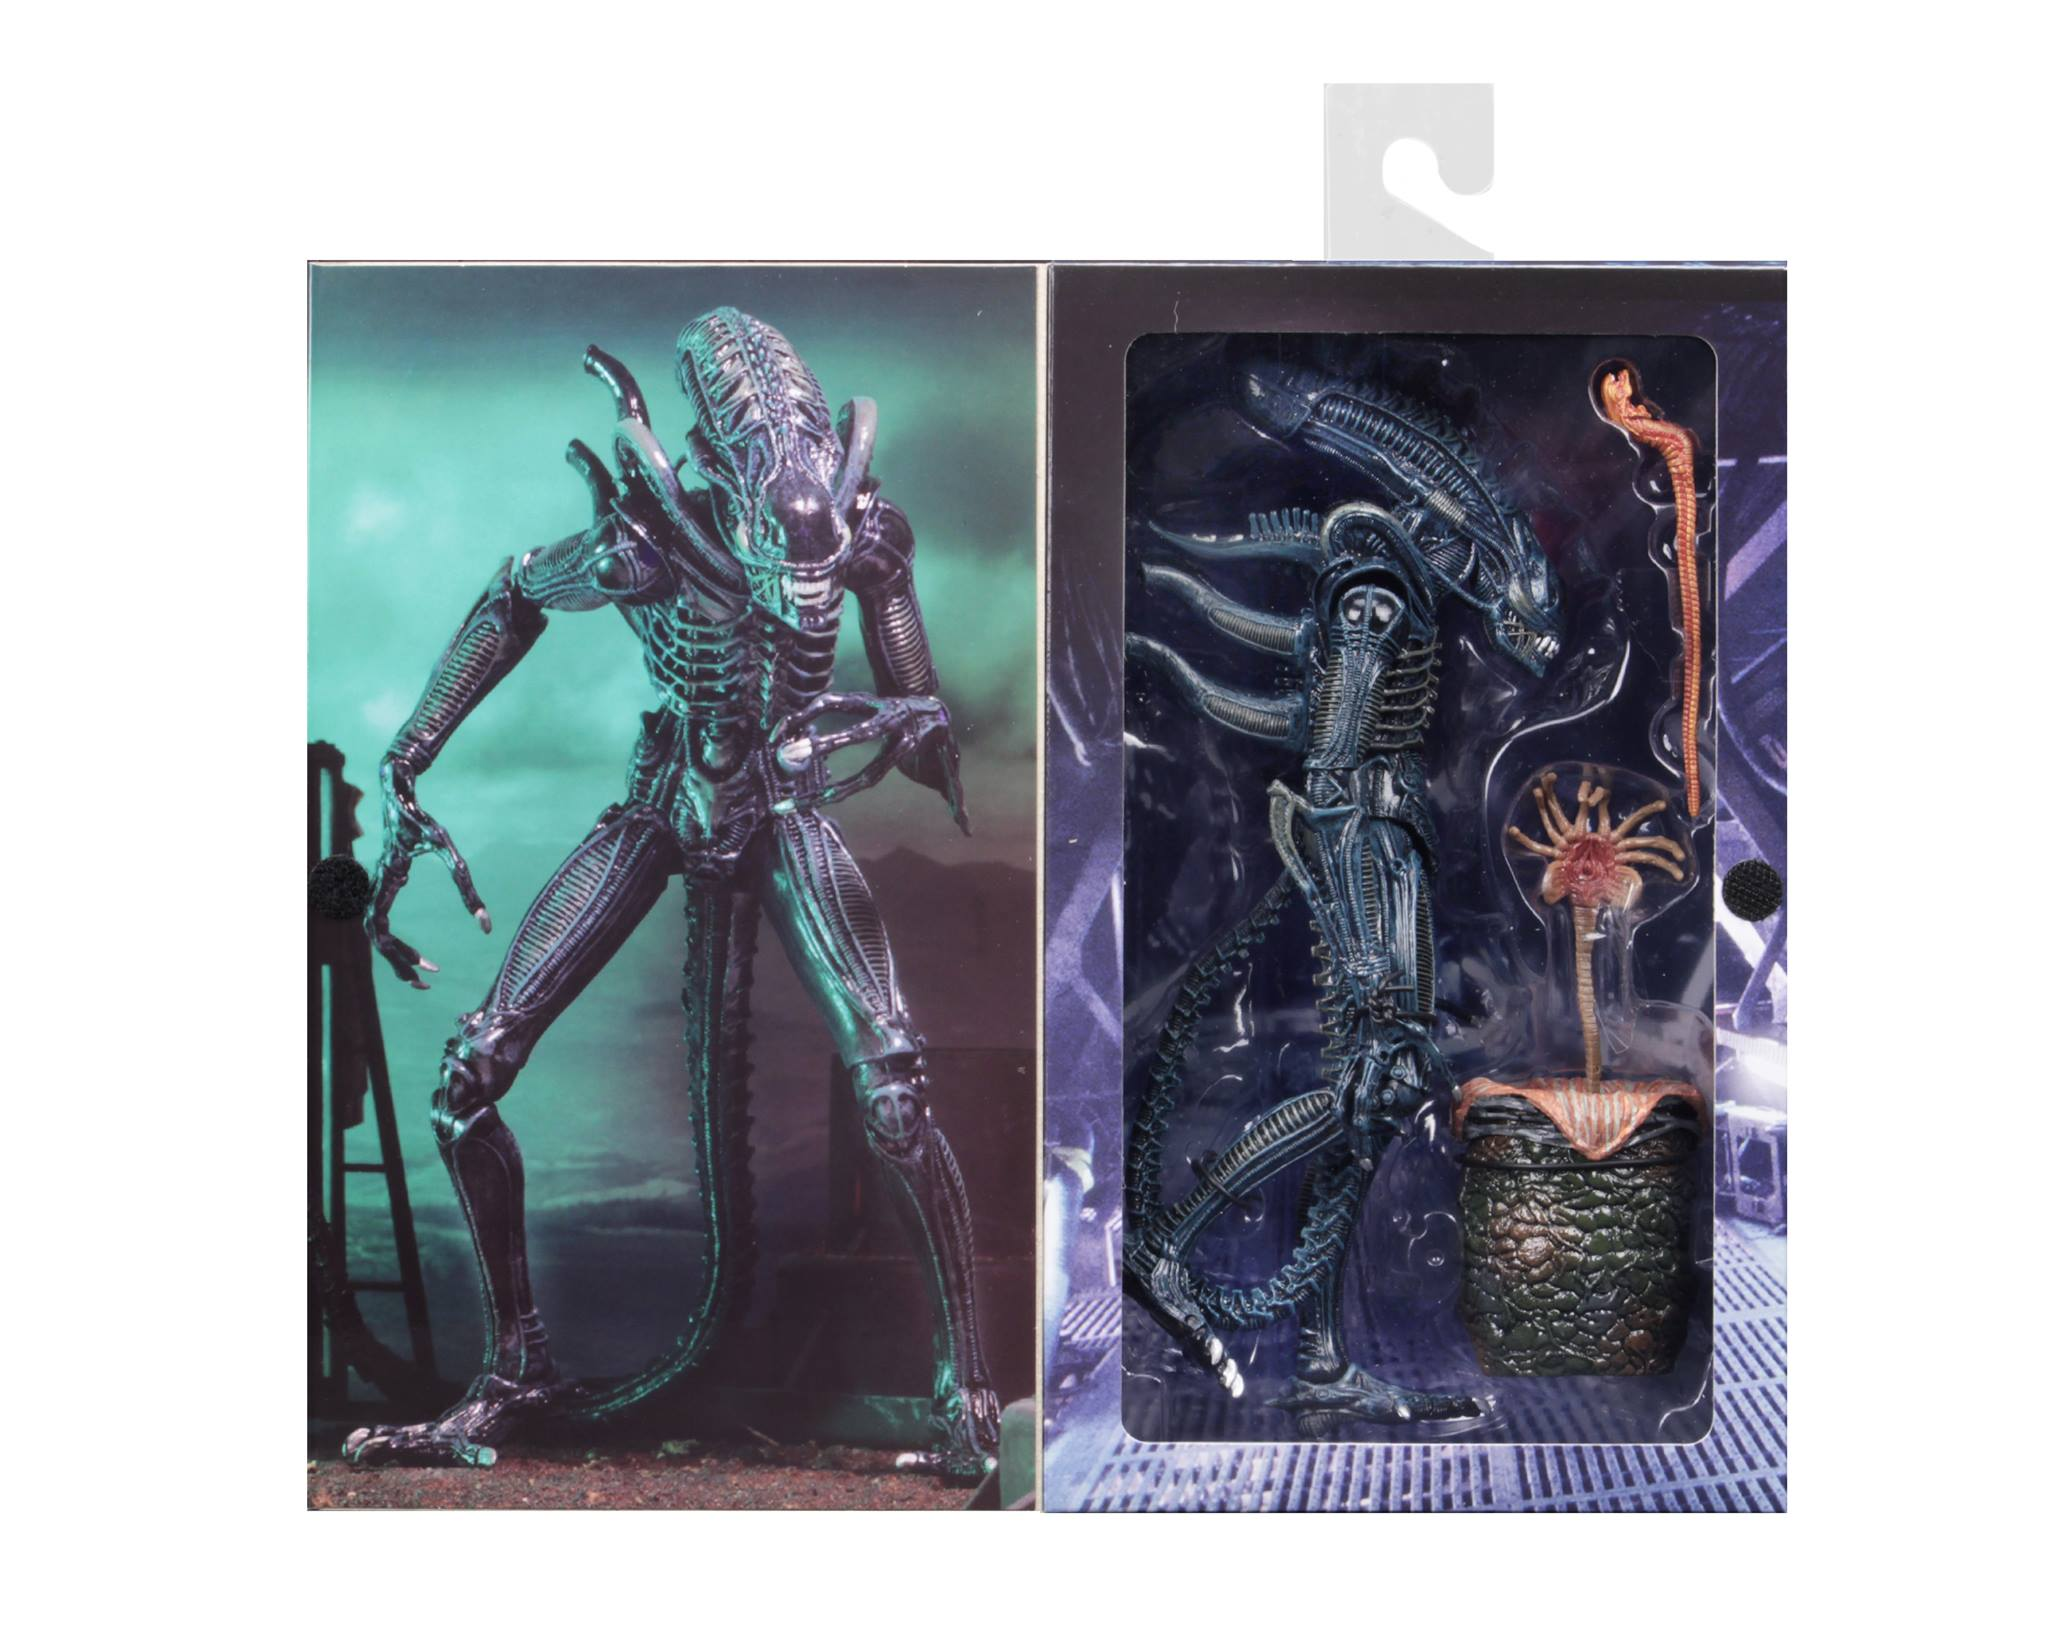 Neca Ultimate Alien Warriors Packaging And New Release